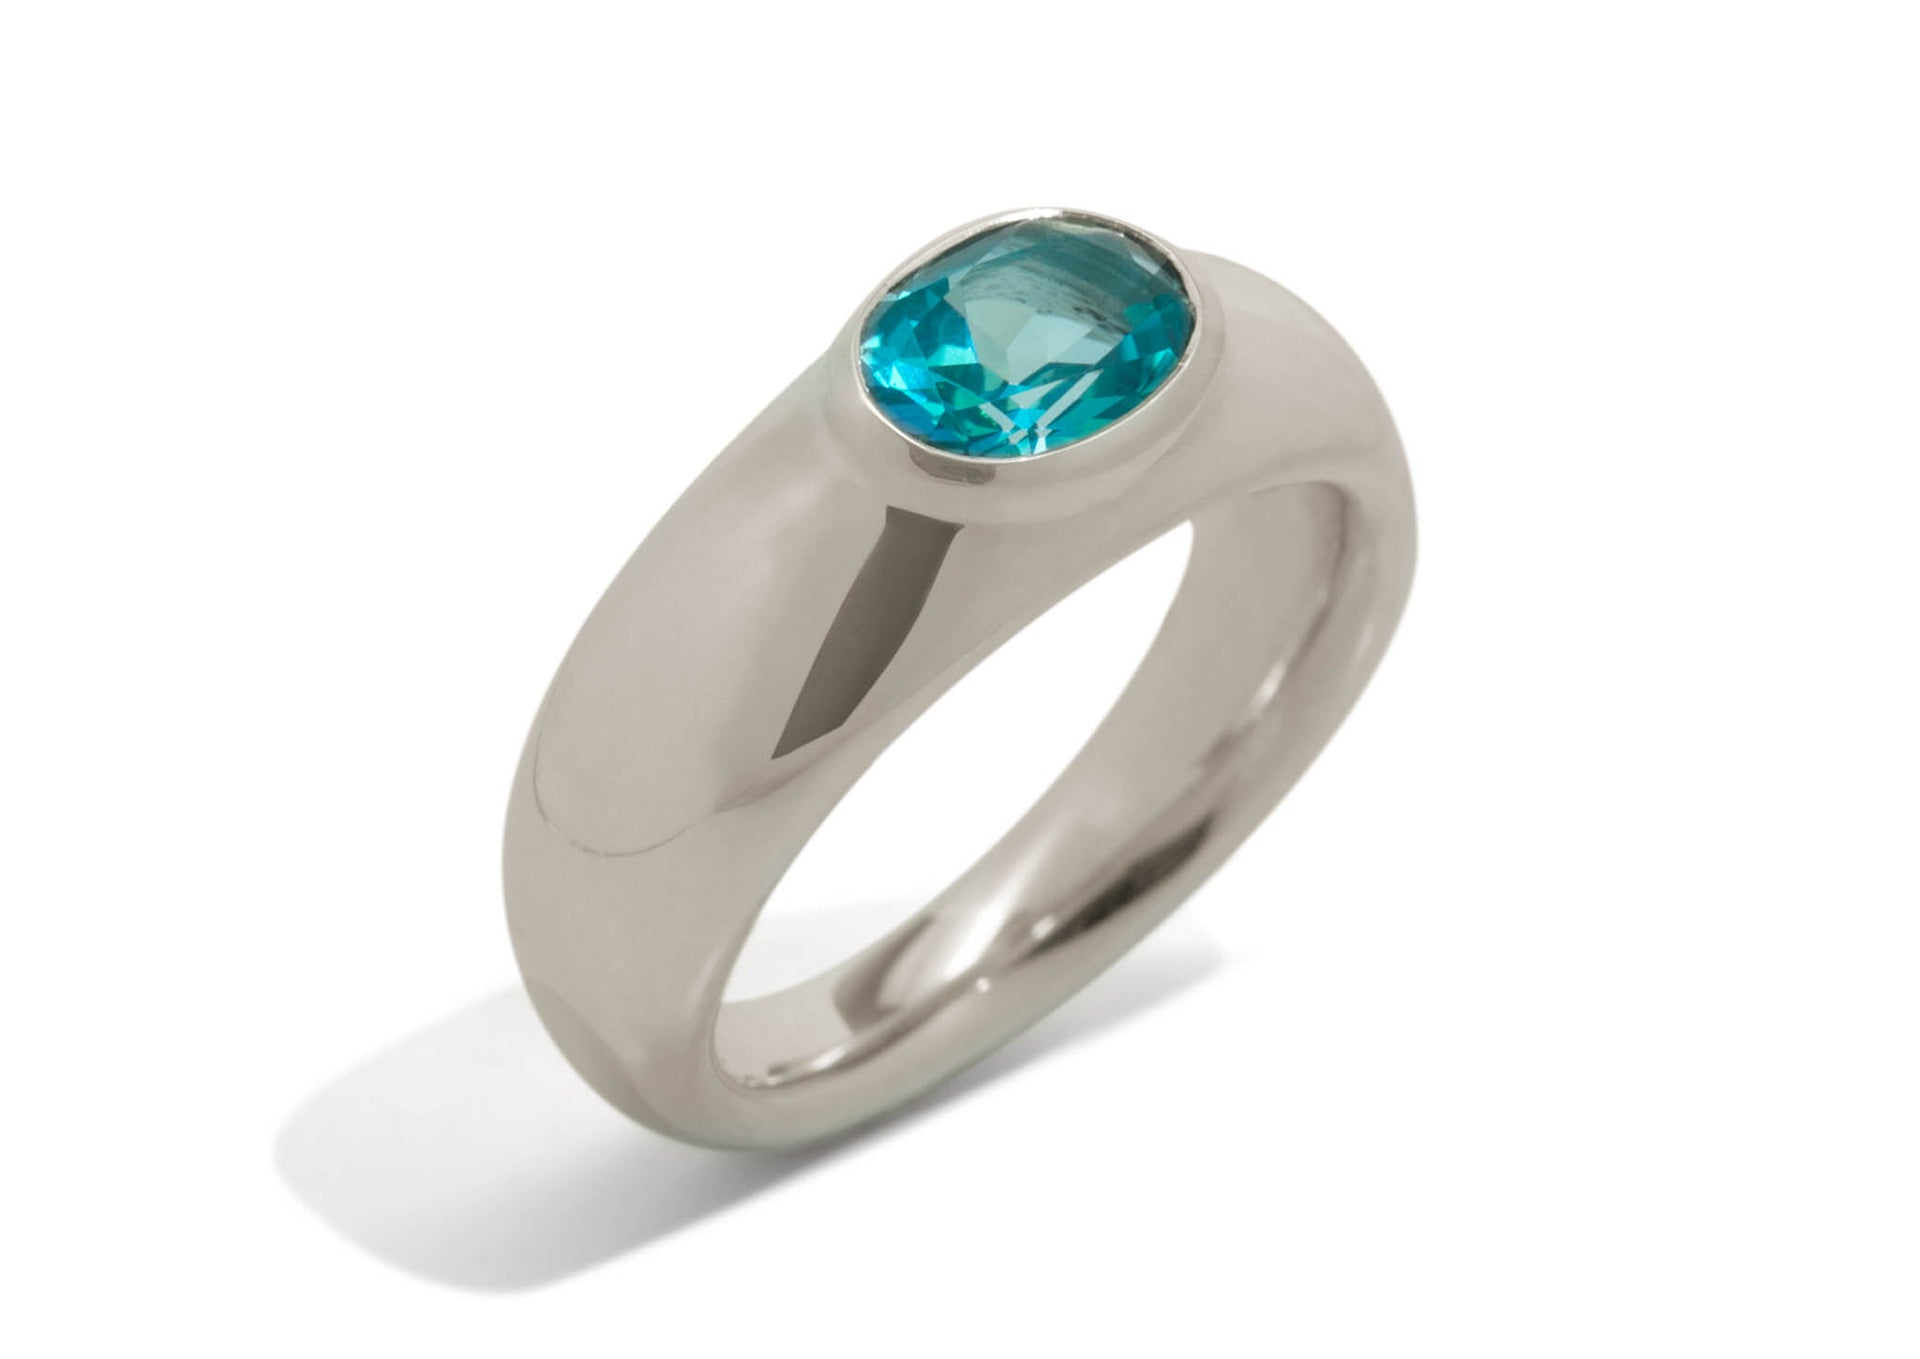 Splendid Gemstone Ring, White Gold & Platinum